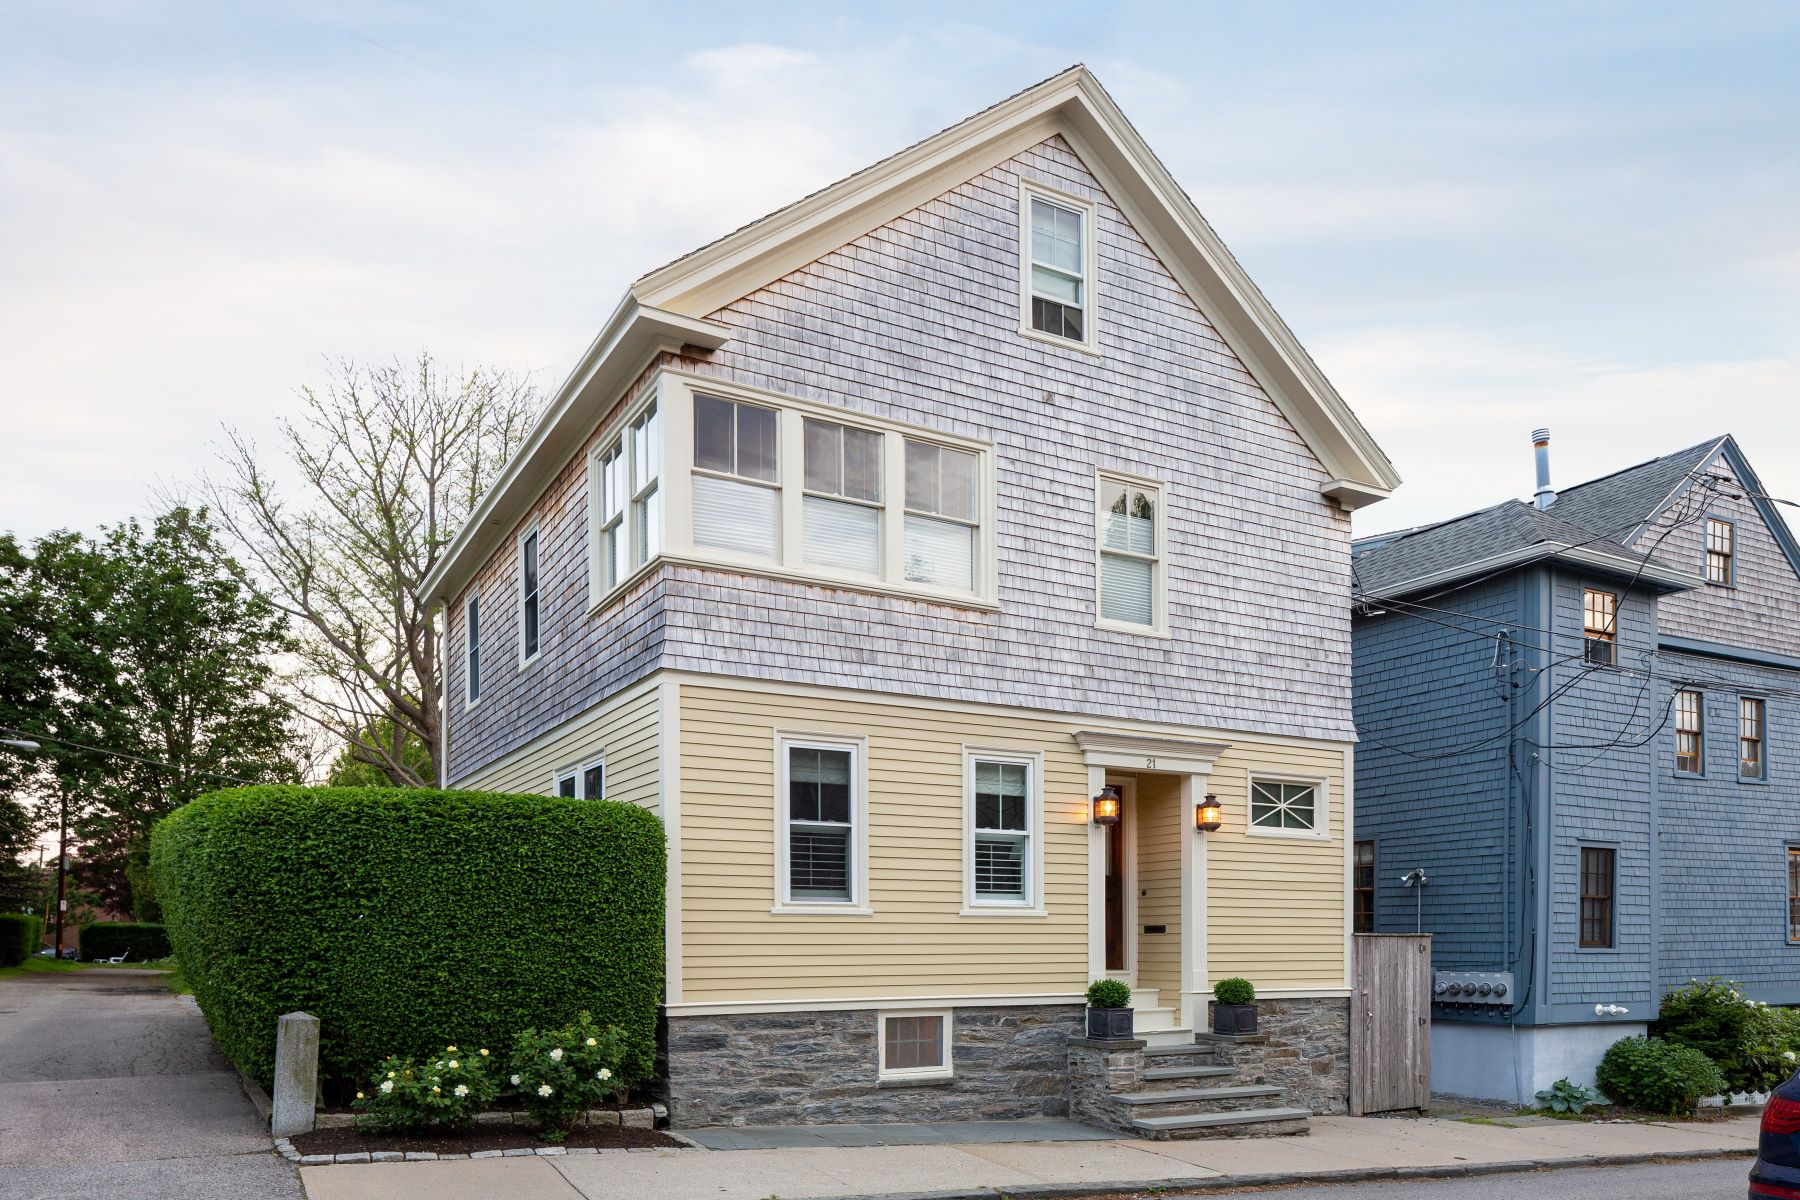 Single Family Homes for Sale at Renovated Cottage with 3-Car Garage on Double Lot 21 Sherman Street Newport, Rhode Island 02840 United States